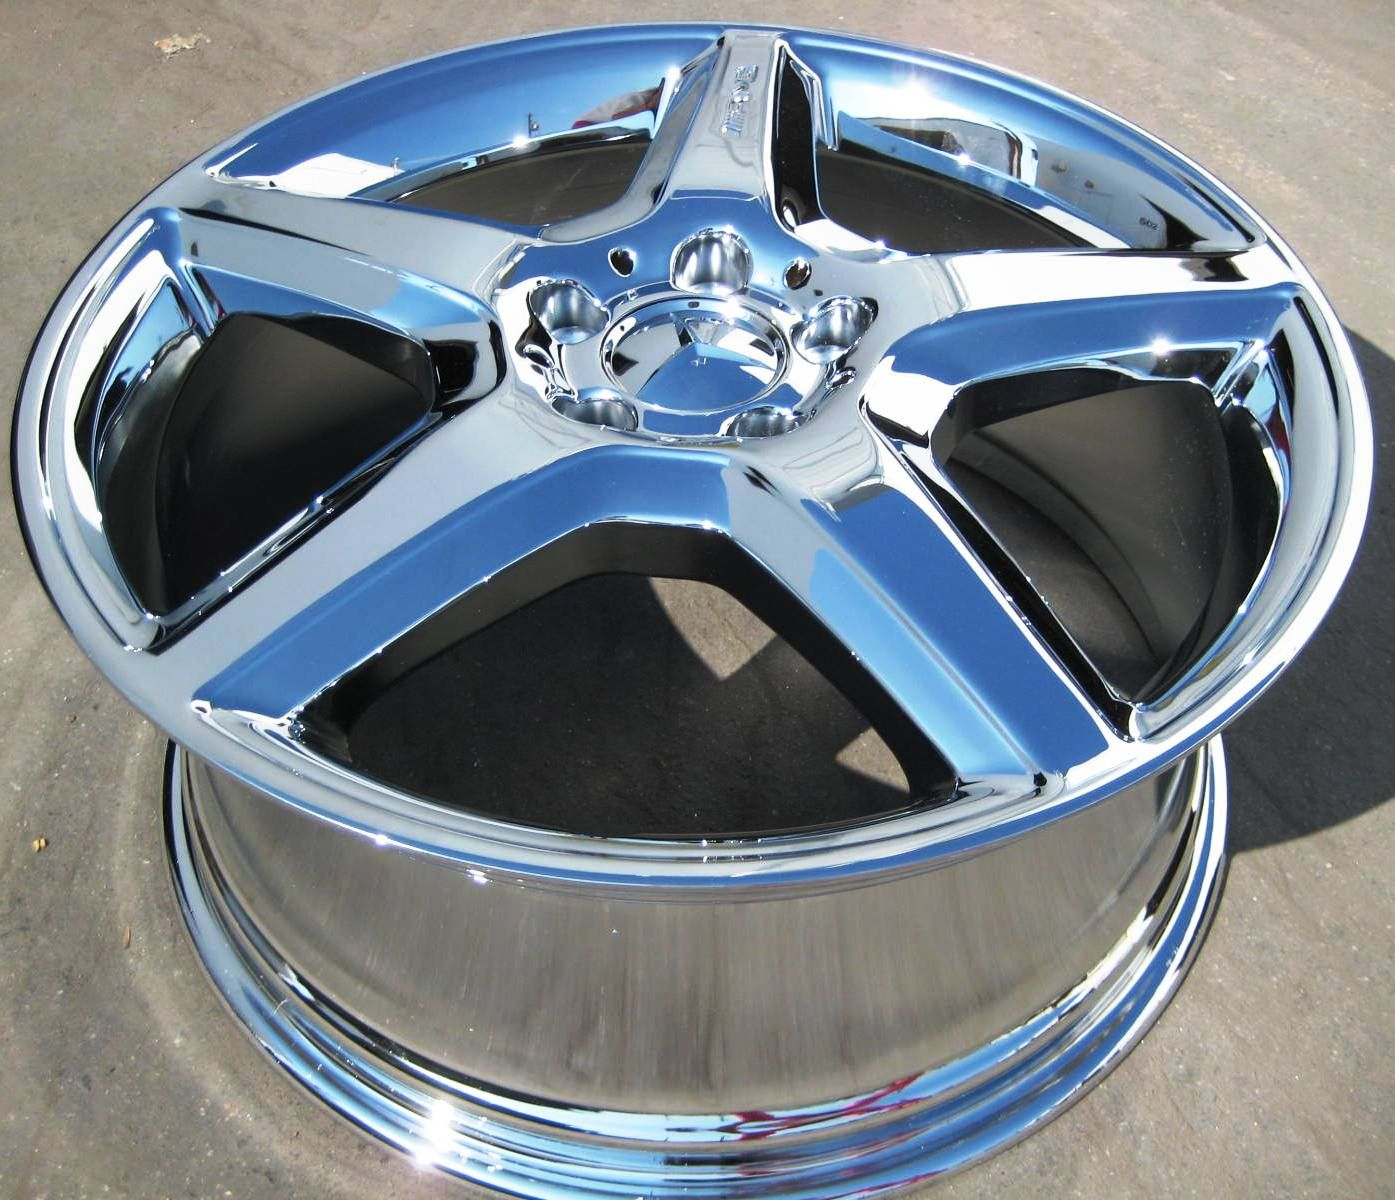 19 New Factory Mercedes R500 ML550 ML55 AMG Chrome Wheels Rims